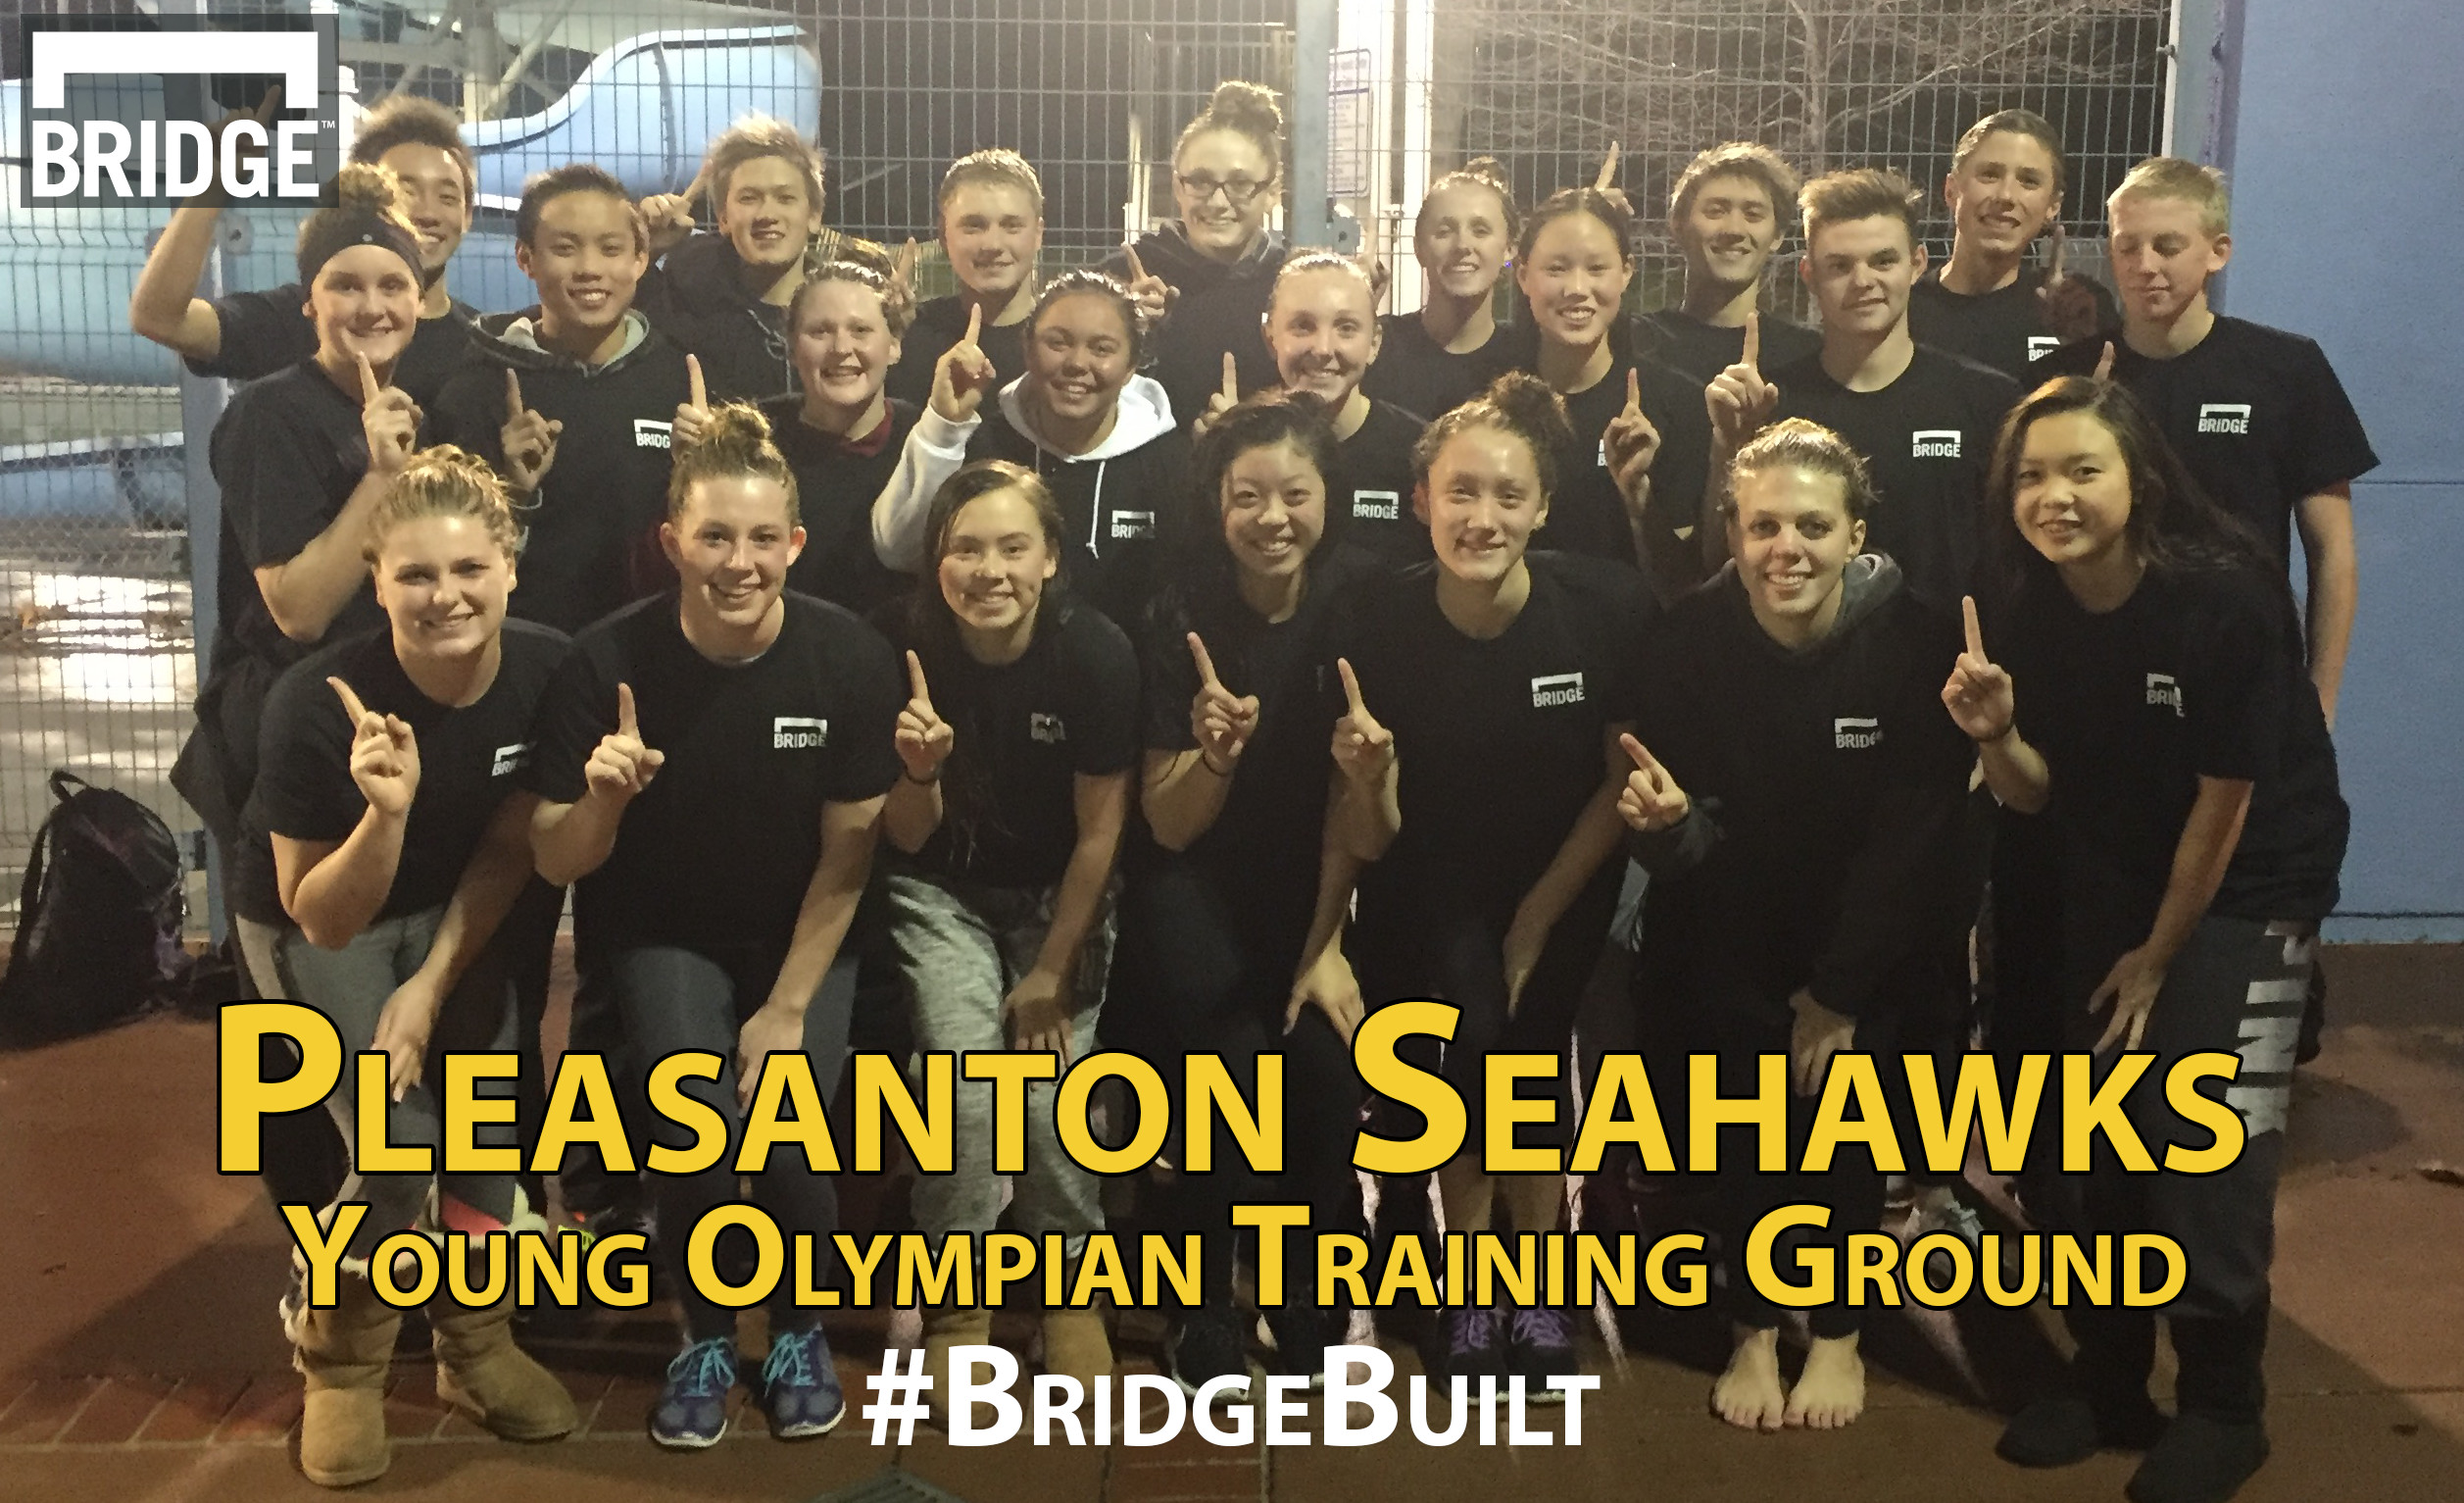 The BridgeBuilt Pleasanton Seahawks